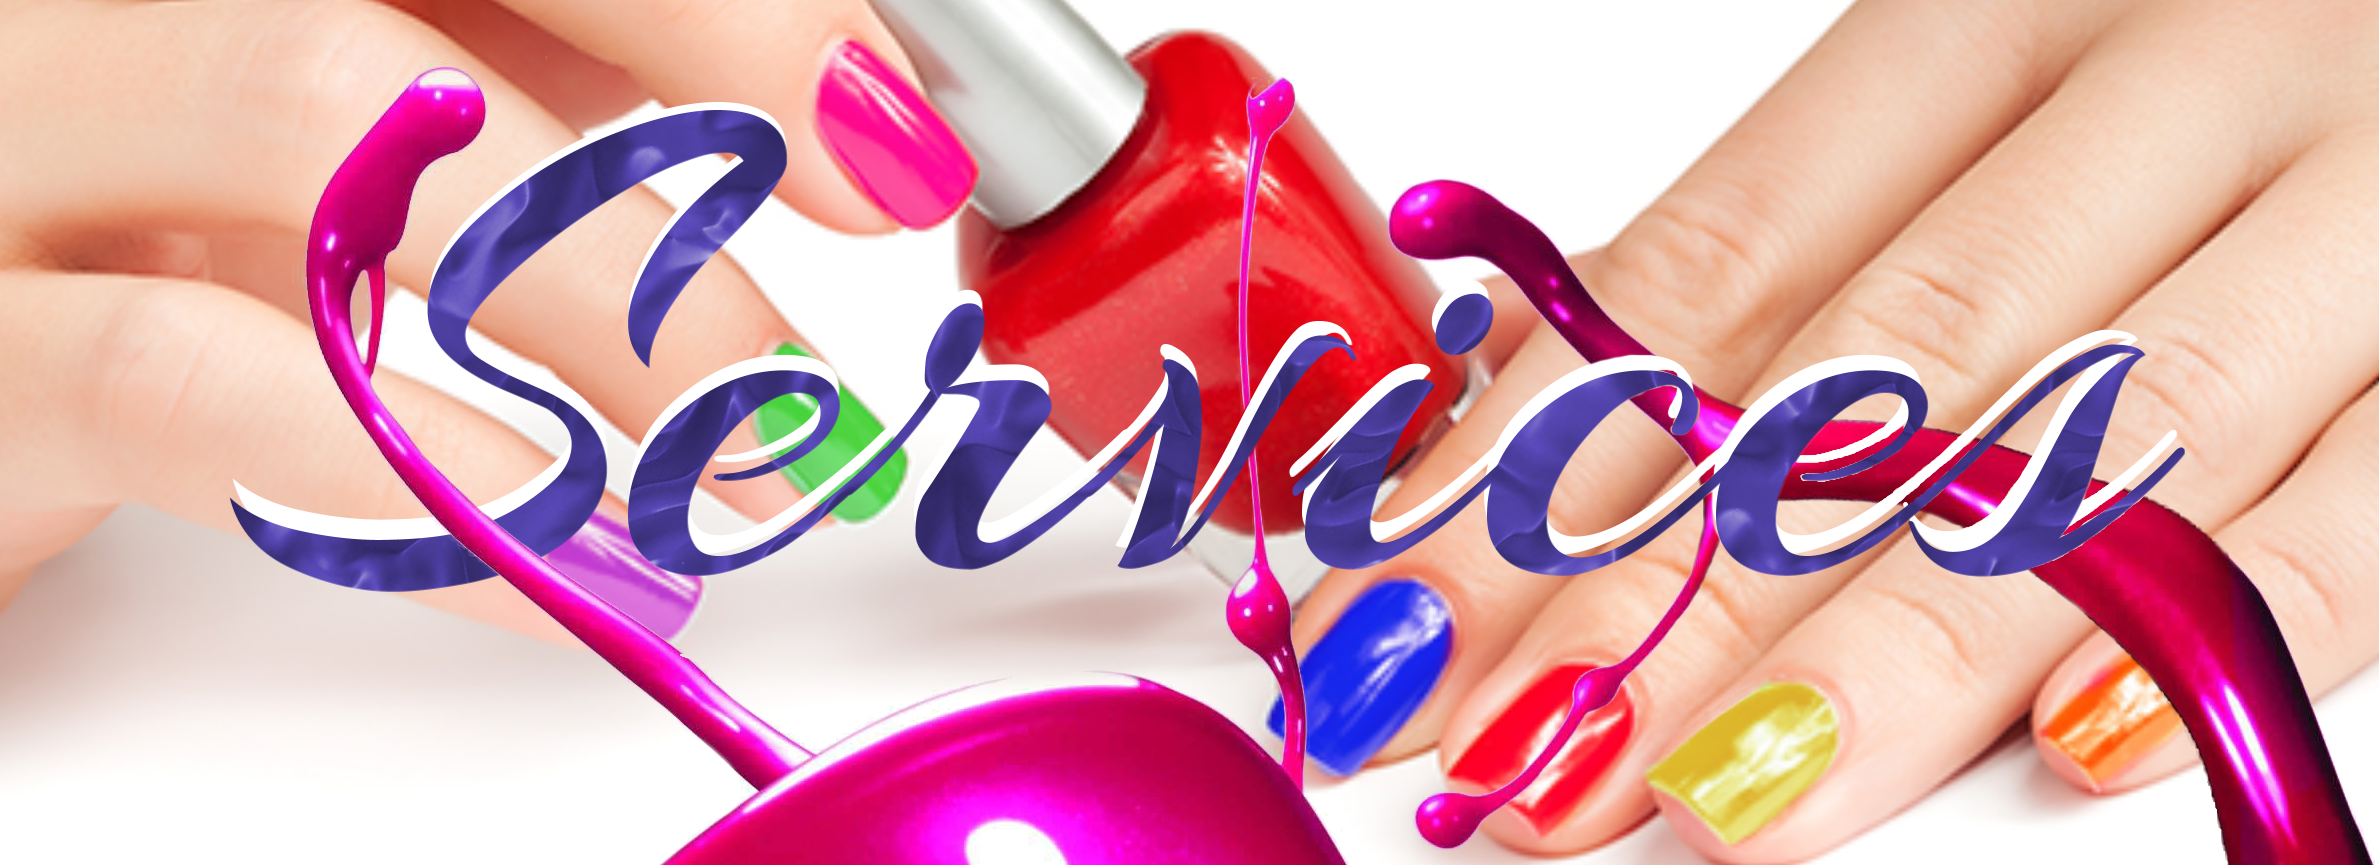 Welcome to T&L Nail Spa - www T&LNailSpa com - Services